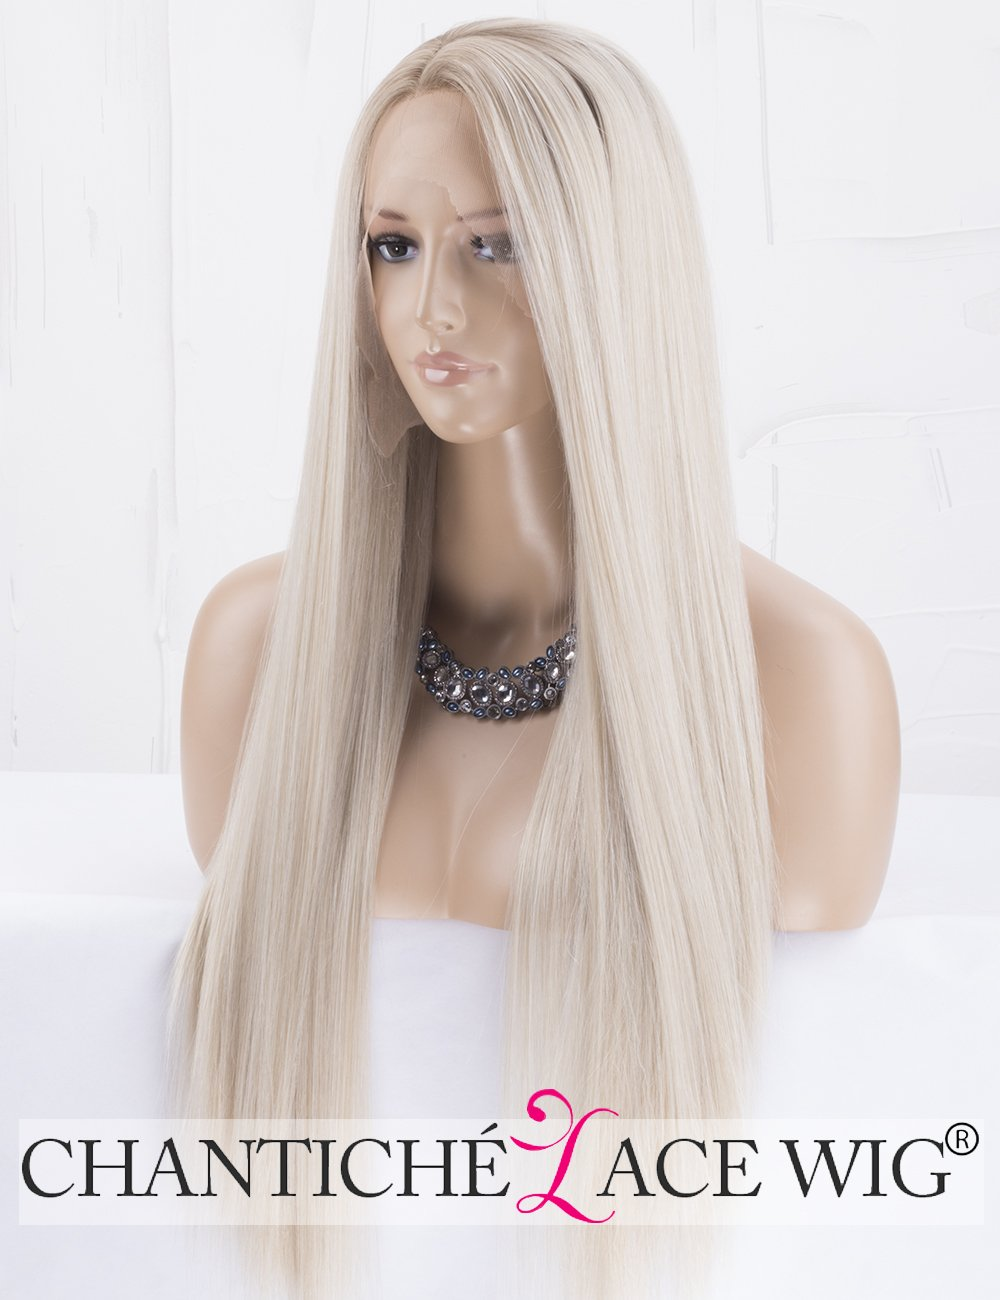 Chantiche Natural Looking Dark Roots Long Ombre Blonde Wig Straight Hair Synthetic Lace Front Wigs UK for Women Side Part Heat Resistant Fiber 24 Inches Chantiche Lace Wig